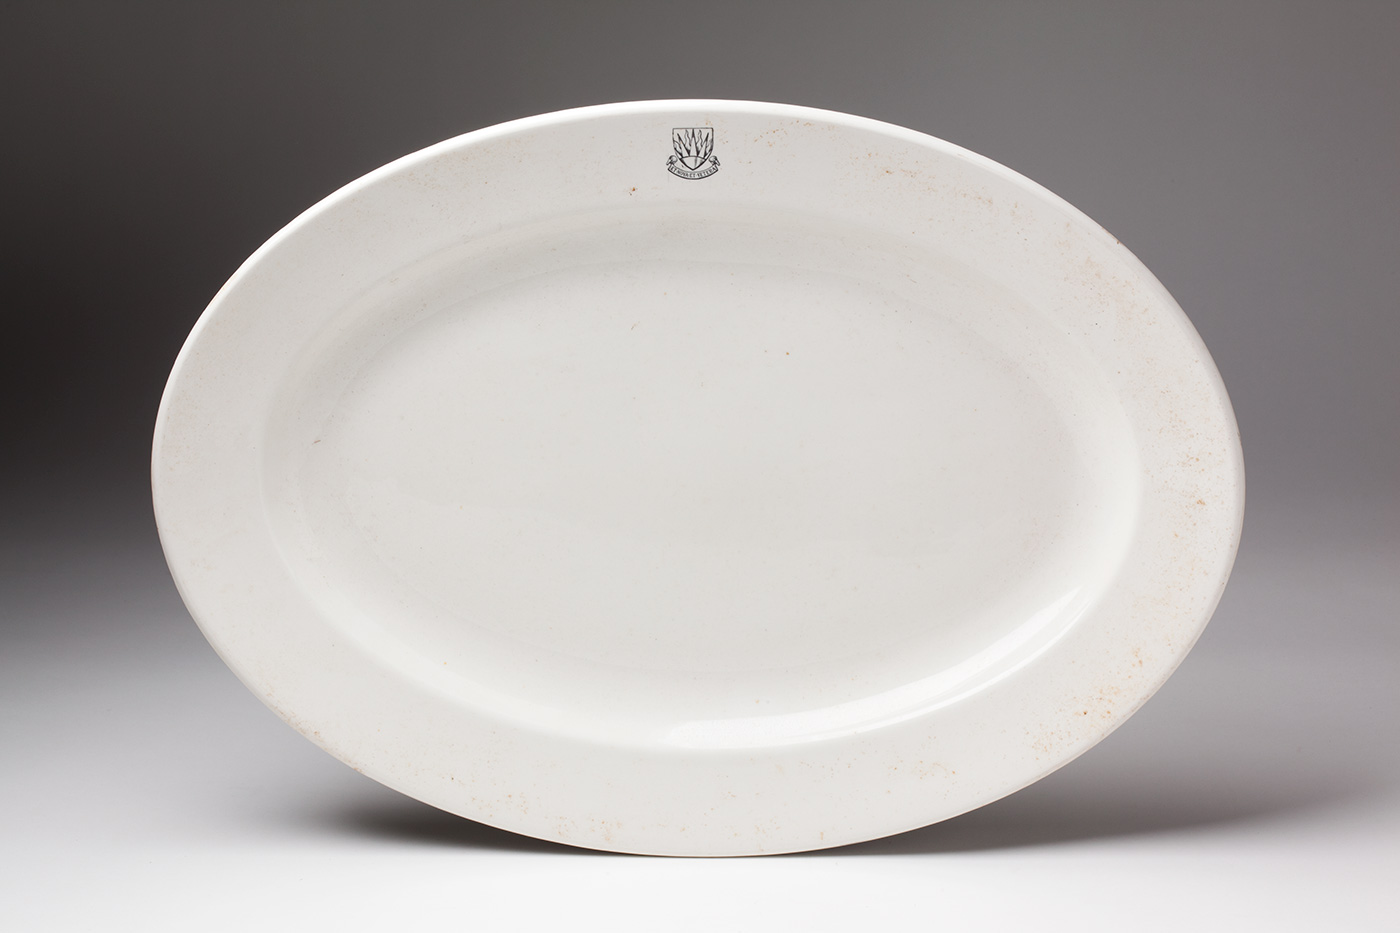 A white oval ceramic platter with an emblem on the rim that includes the text 'ET NOVA ET VETERA'. - click to view larger image